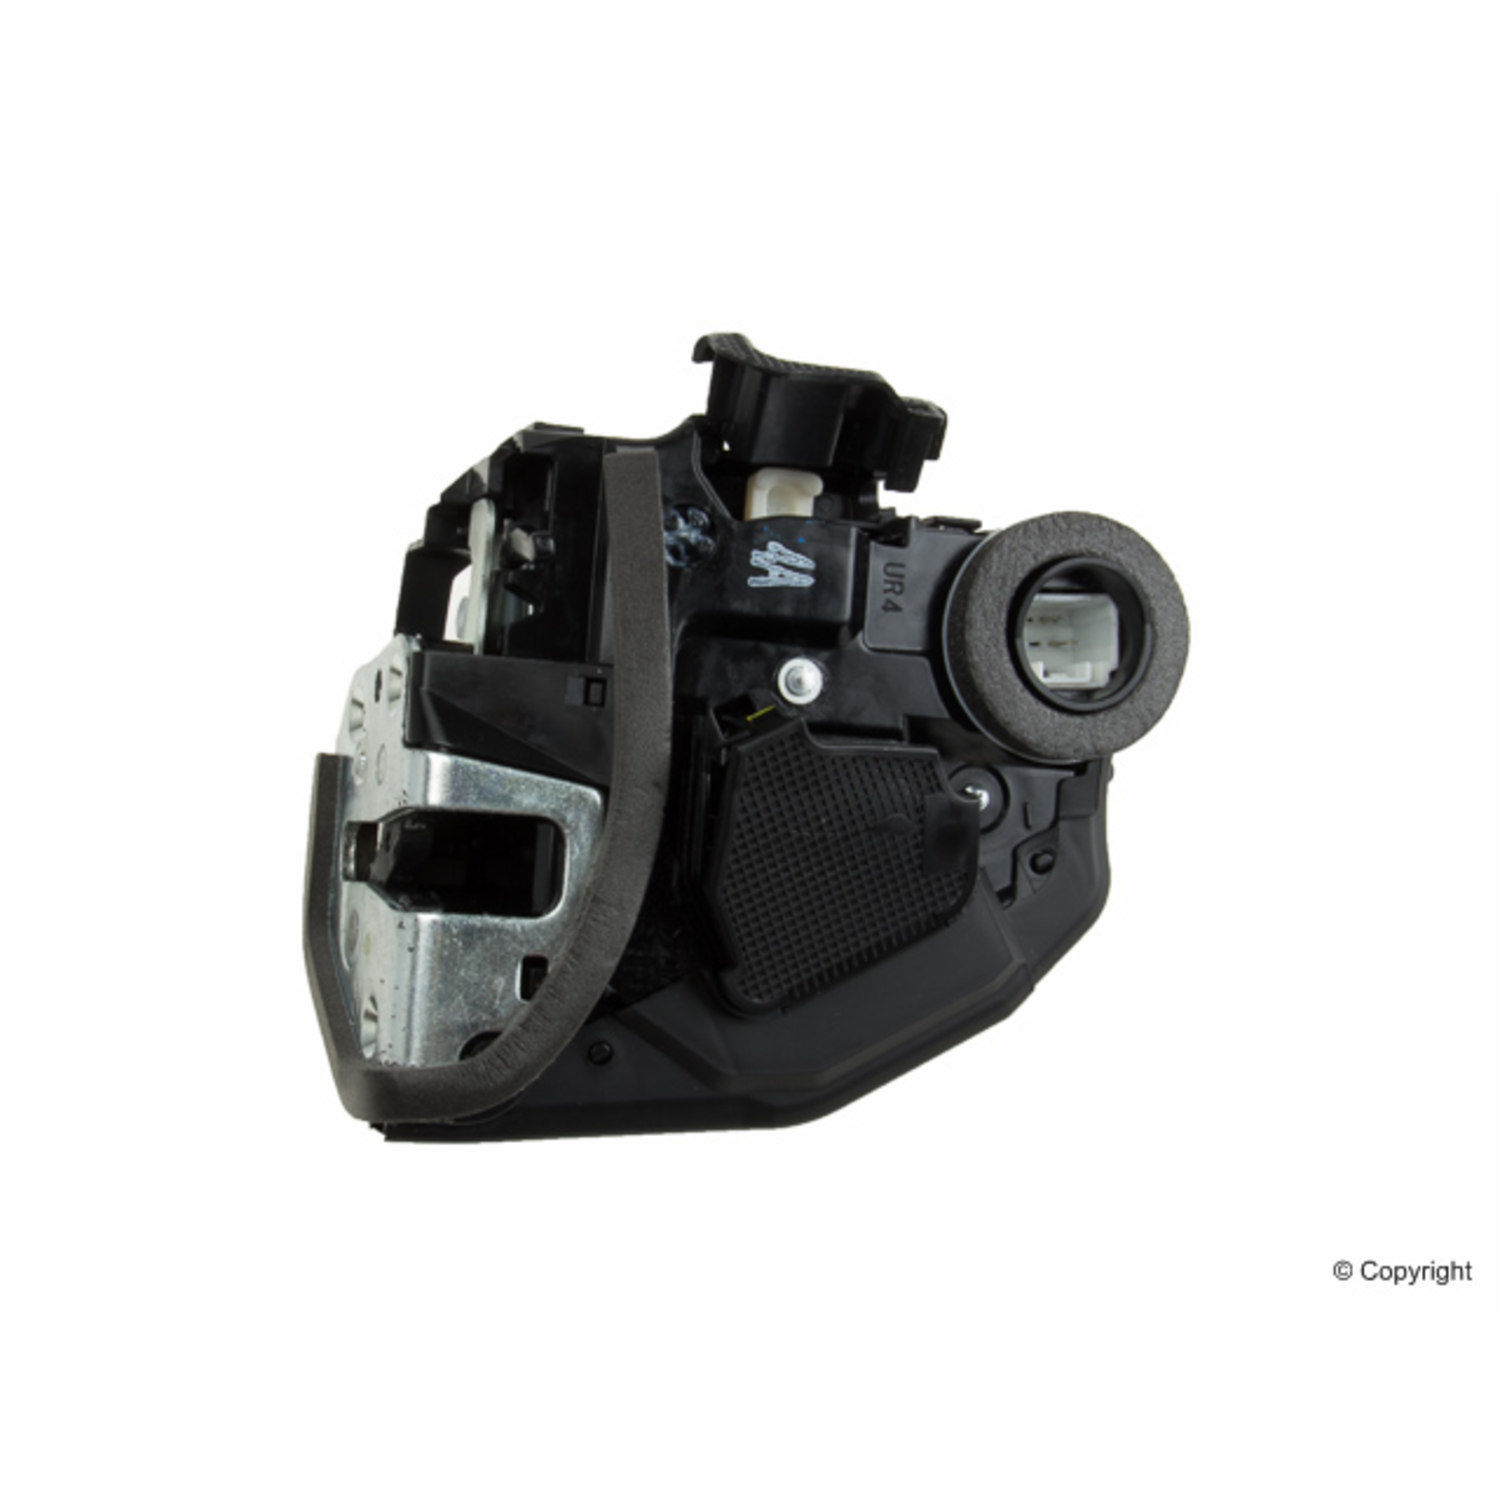 Lexus Door Lock Actuator Motor DLT023